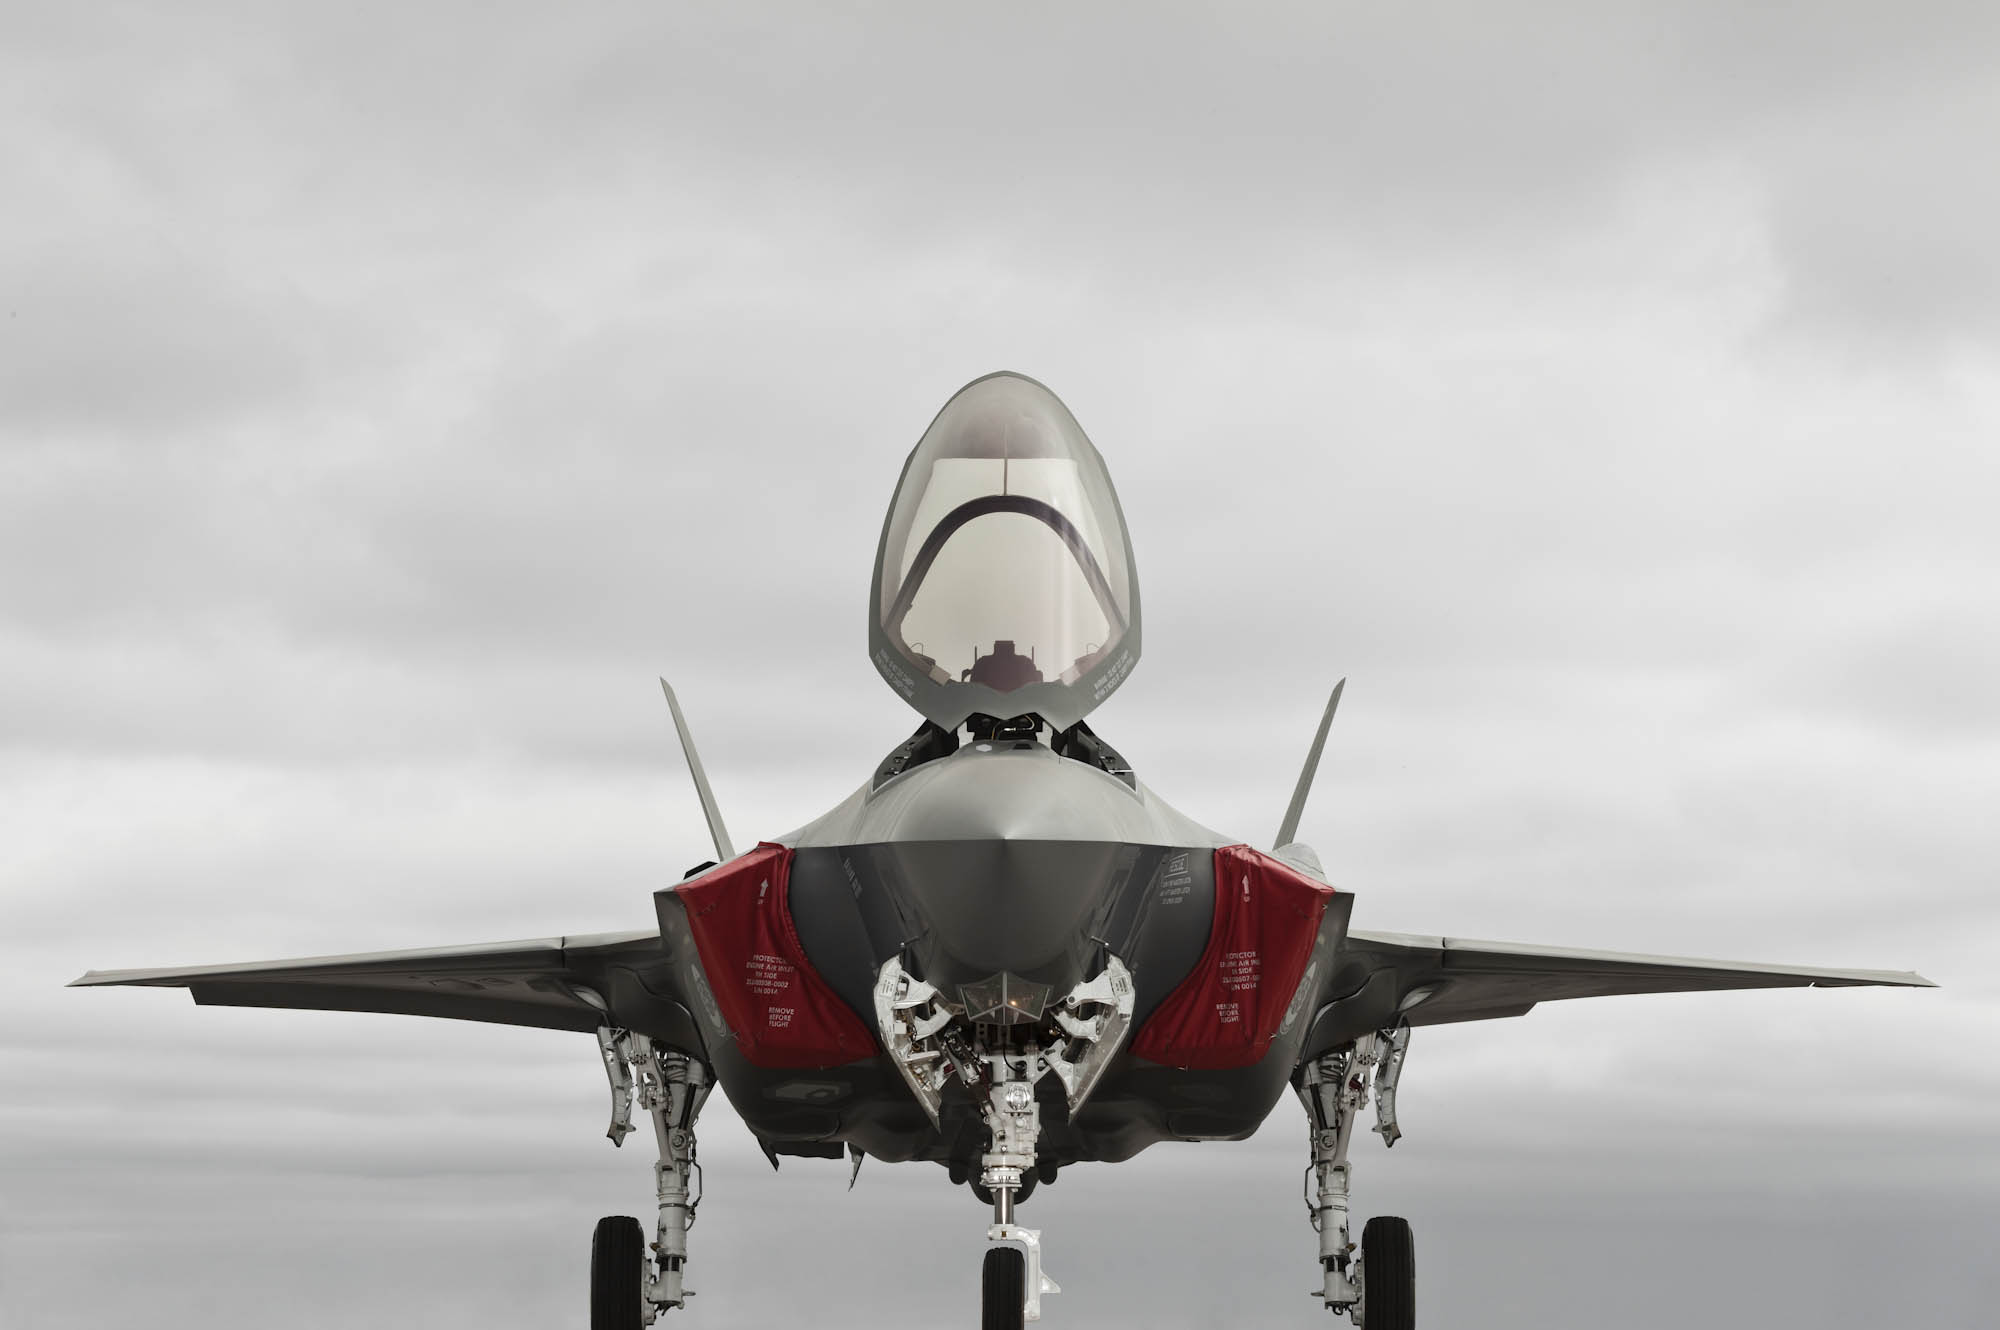 F-35 - Ft. Worth, TX - Fortune Magazine